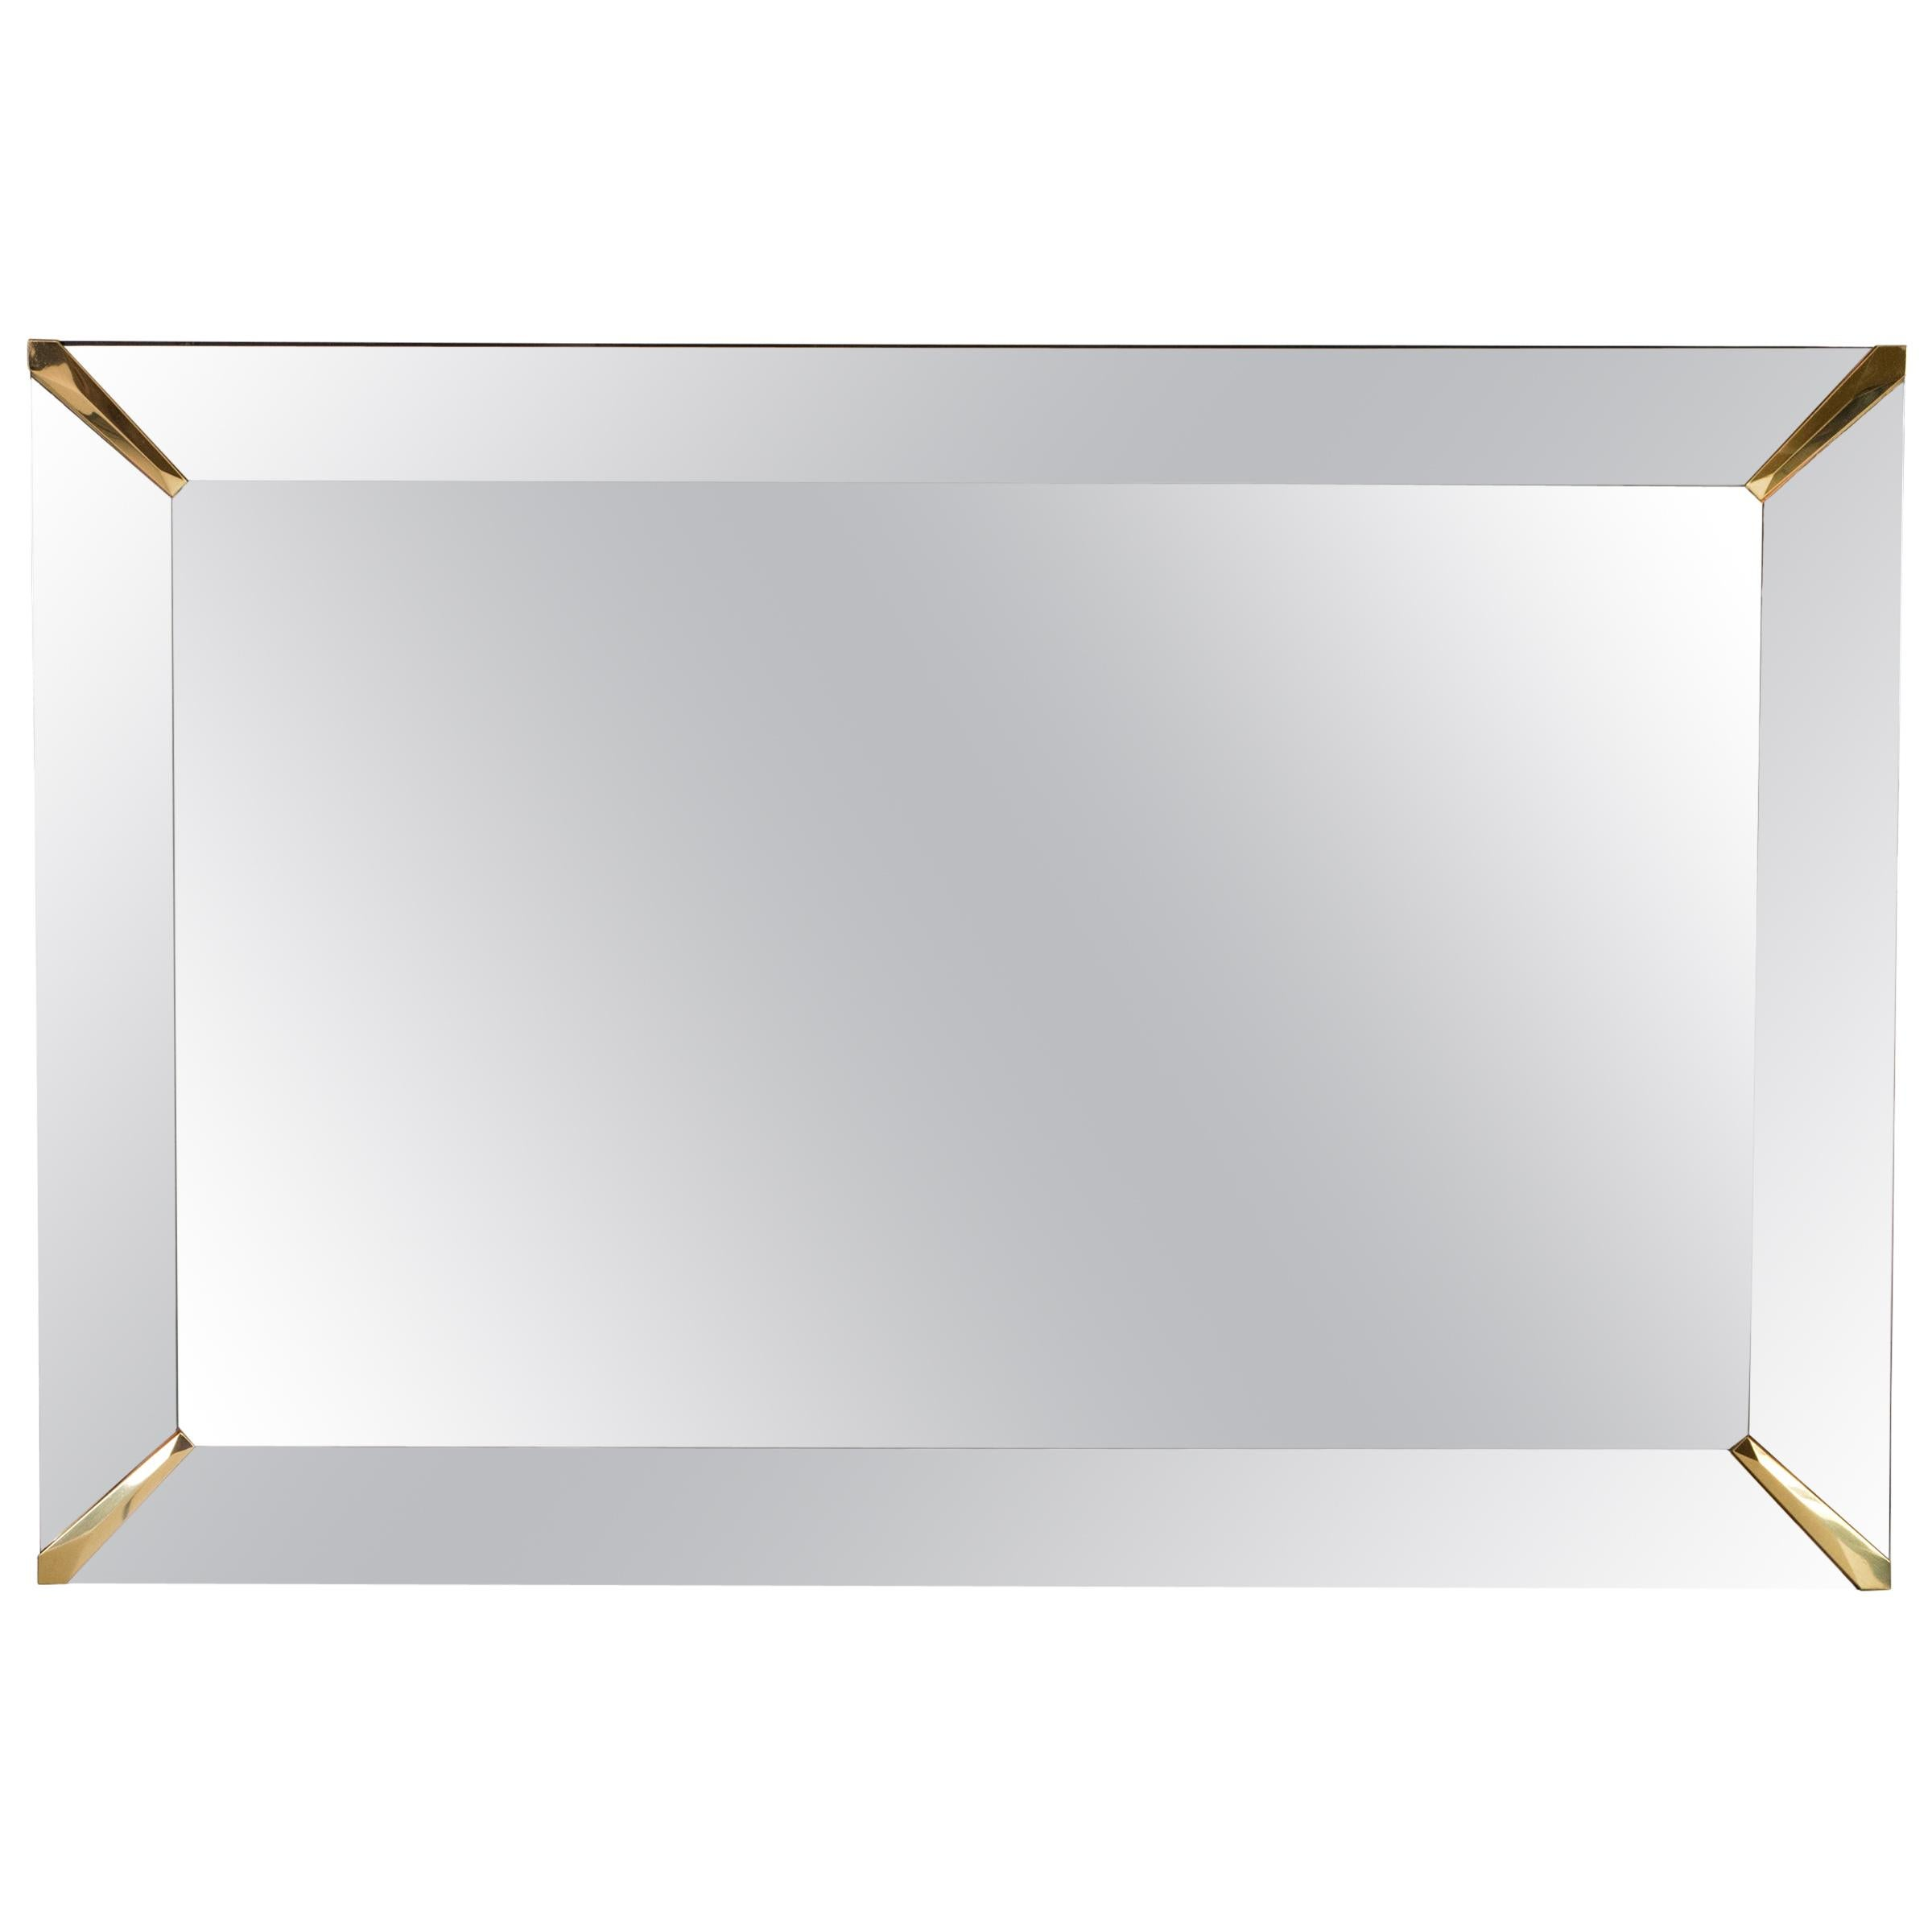 Grand Beveled Mirror with Brass Accents, Mid-Century Modern